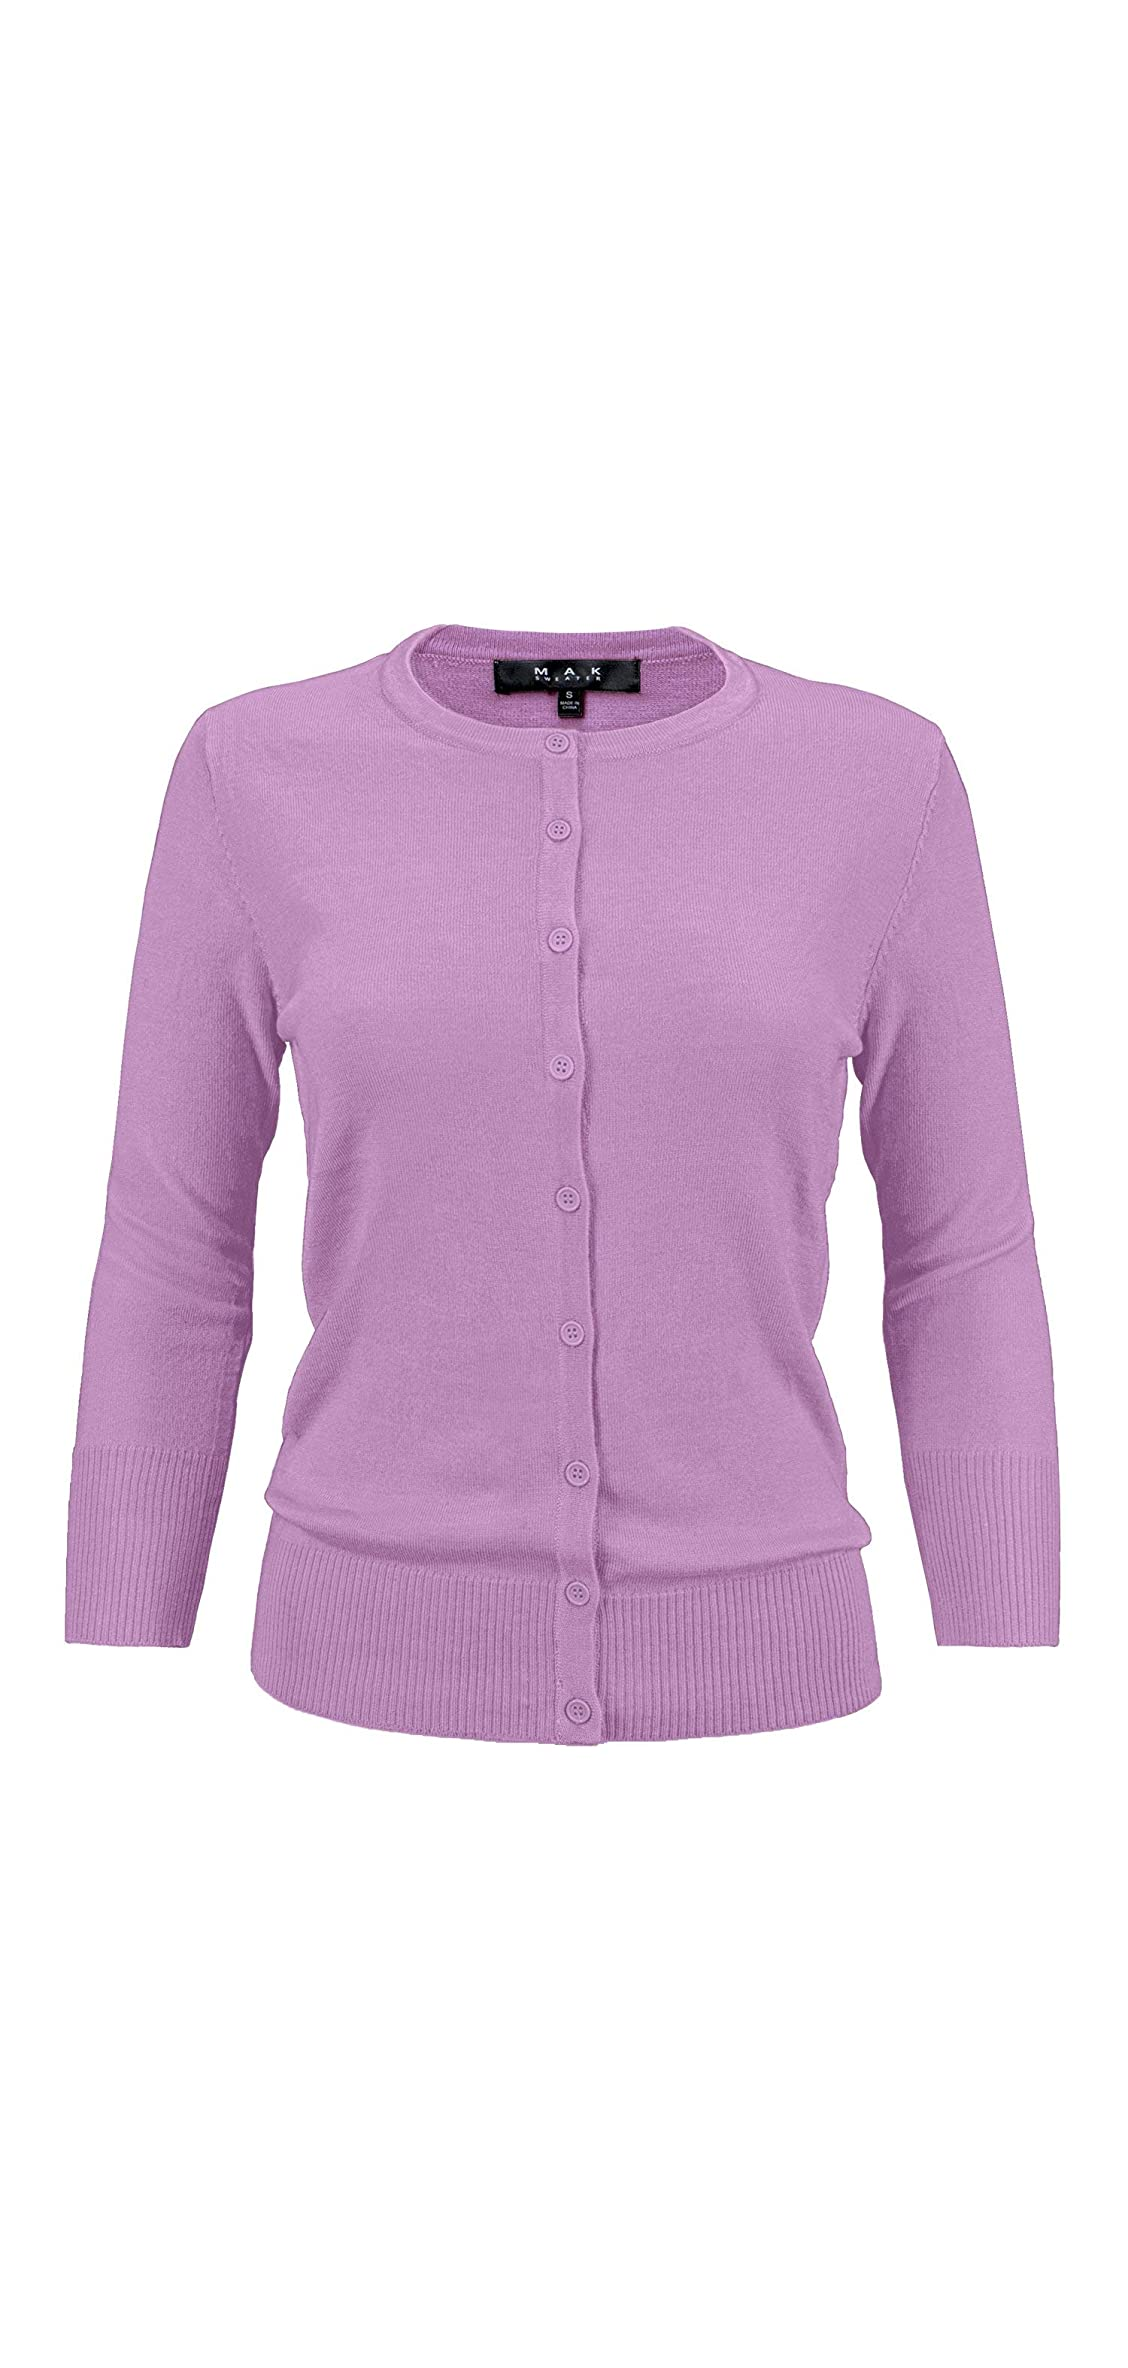 Women's / Sleeve Crewneck Button-down Knit Cardigan